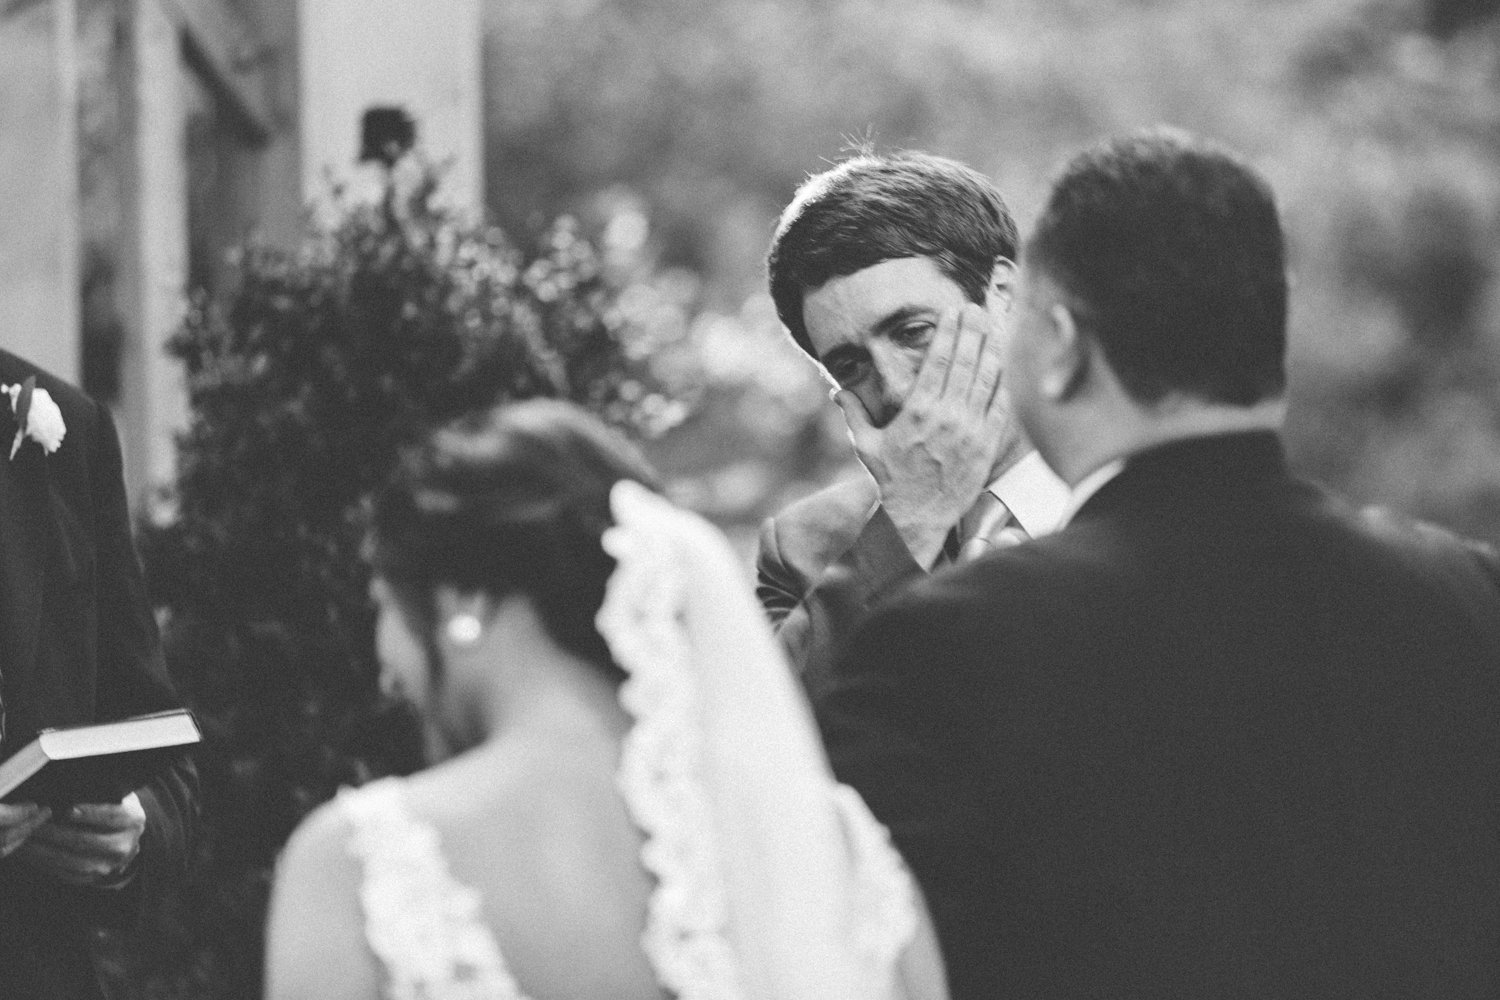 Middle_Tennessee_Wedding_Photographers_-37.jpg